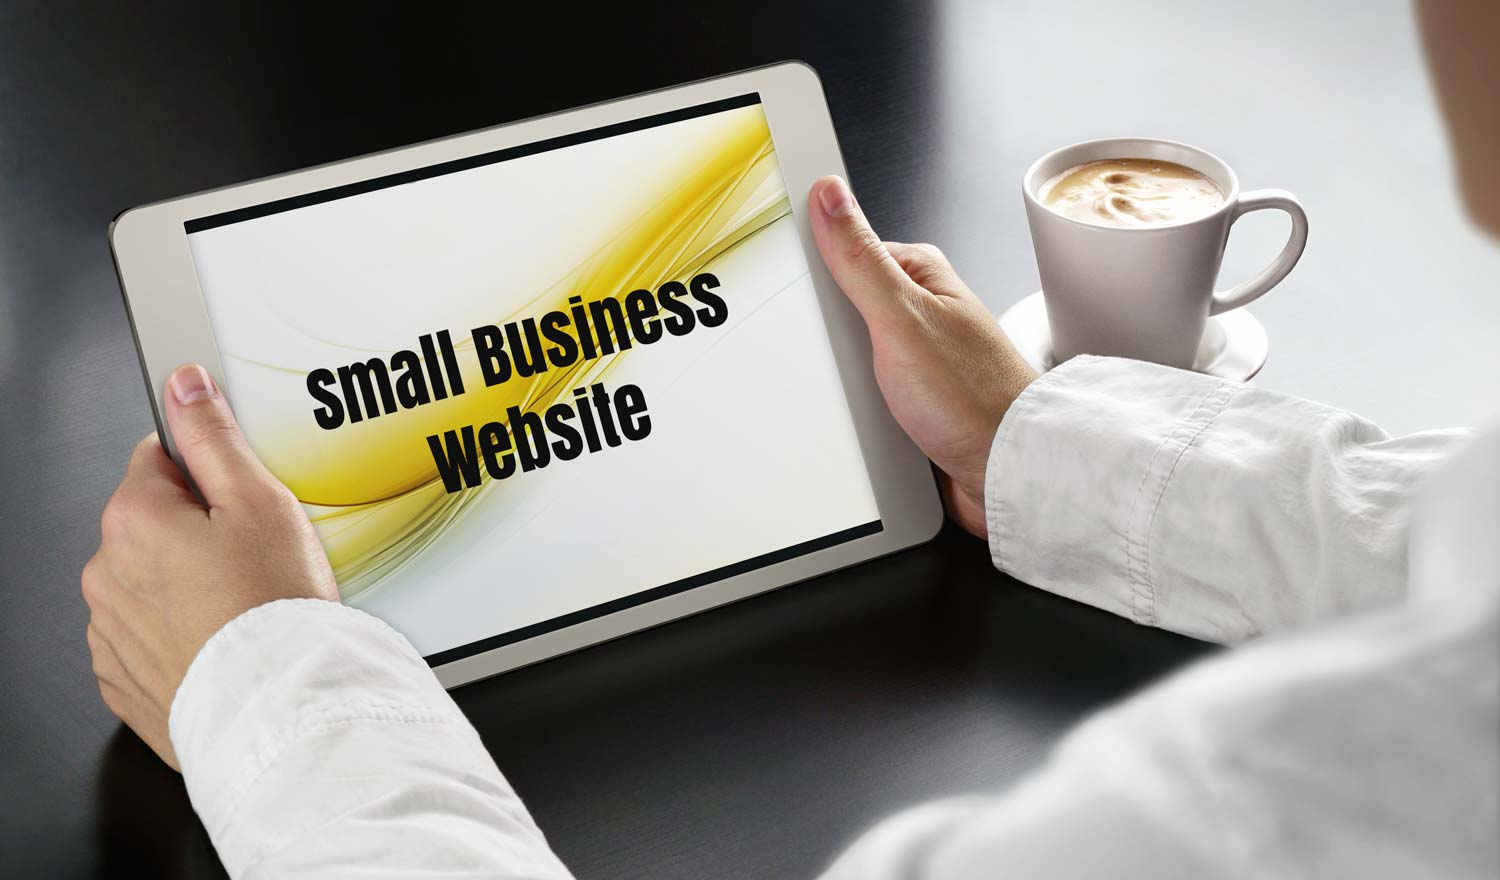 Publish Your Small Business Website for Free